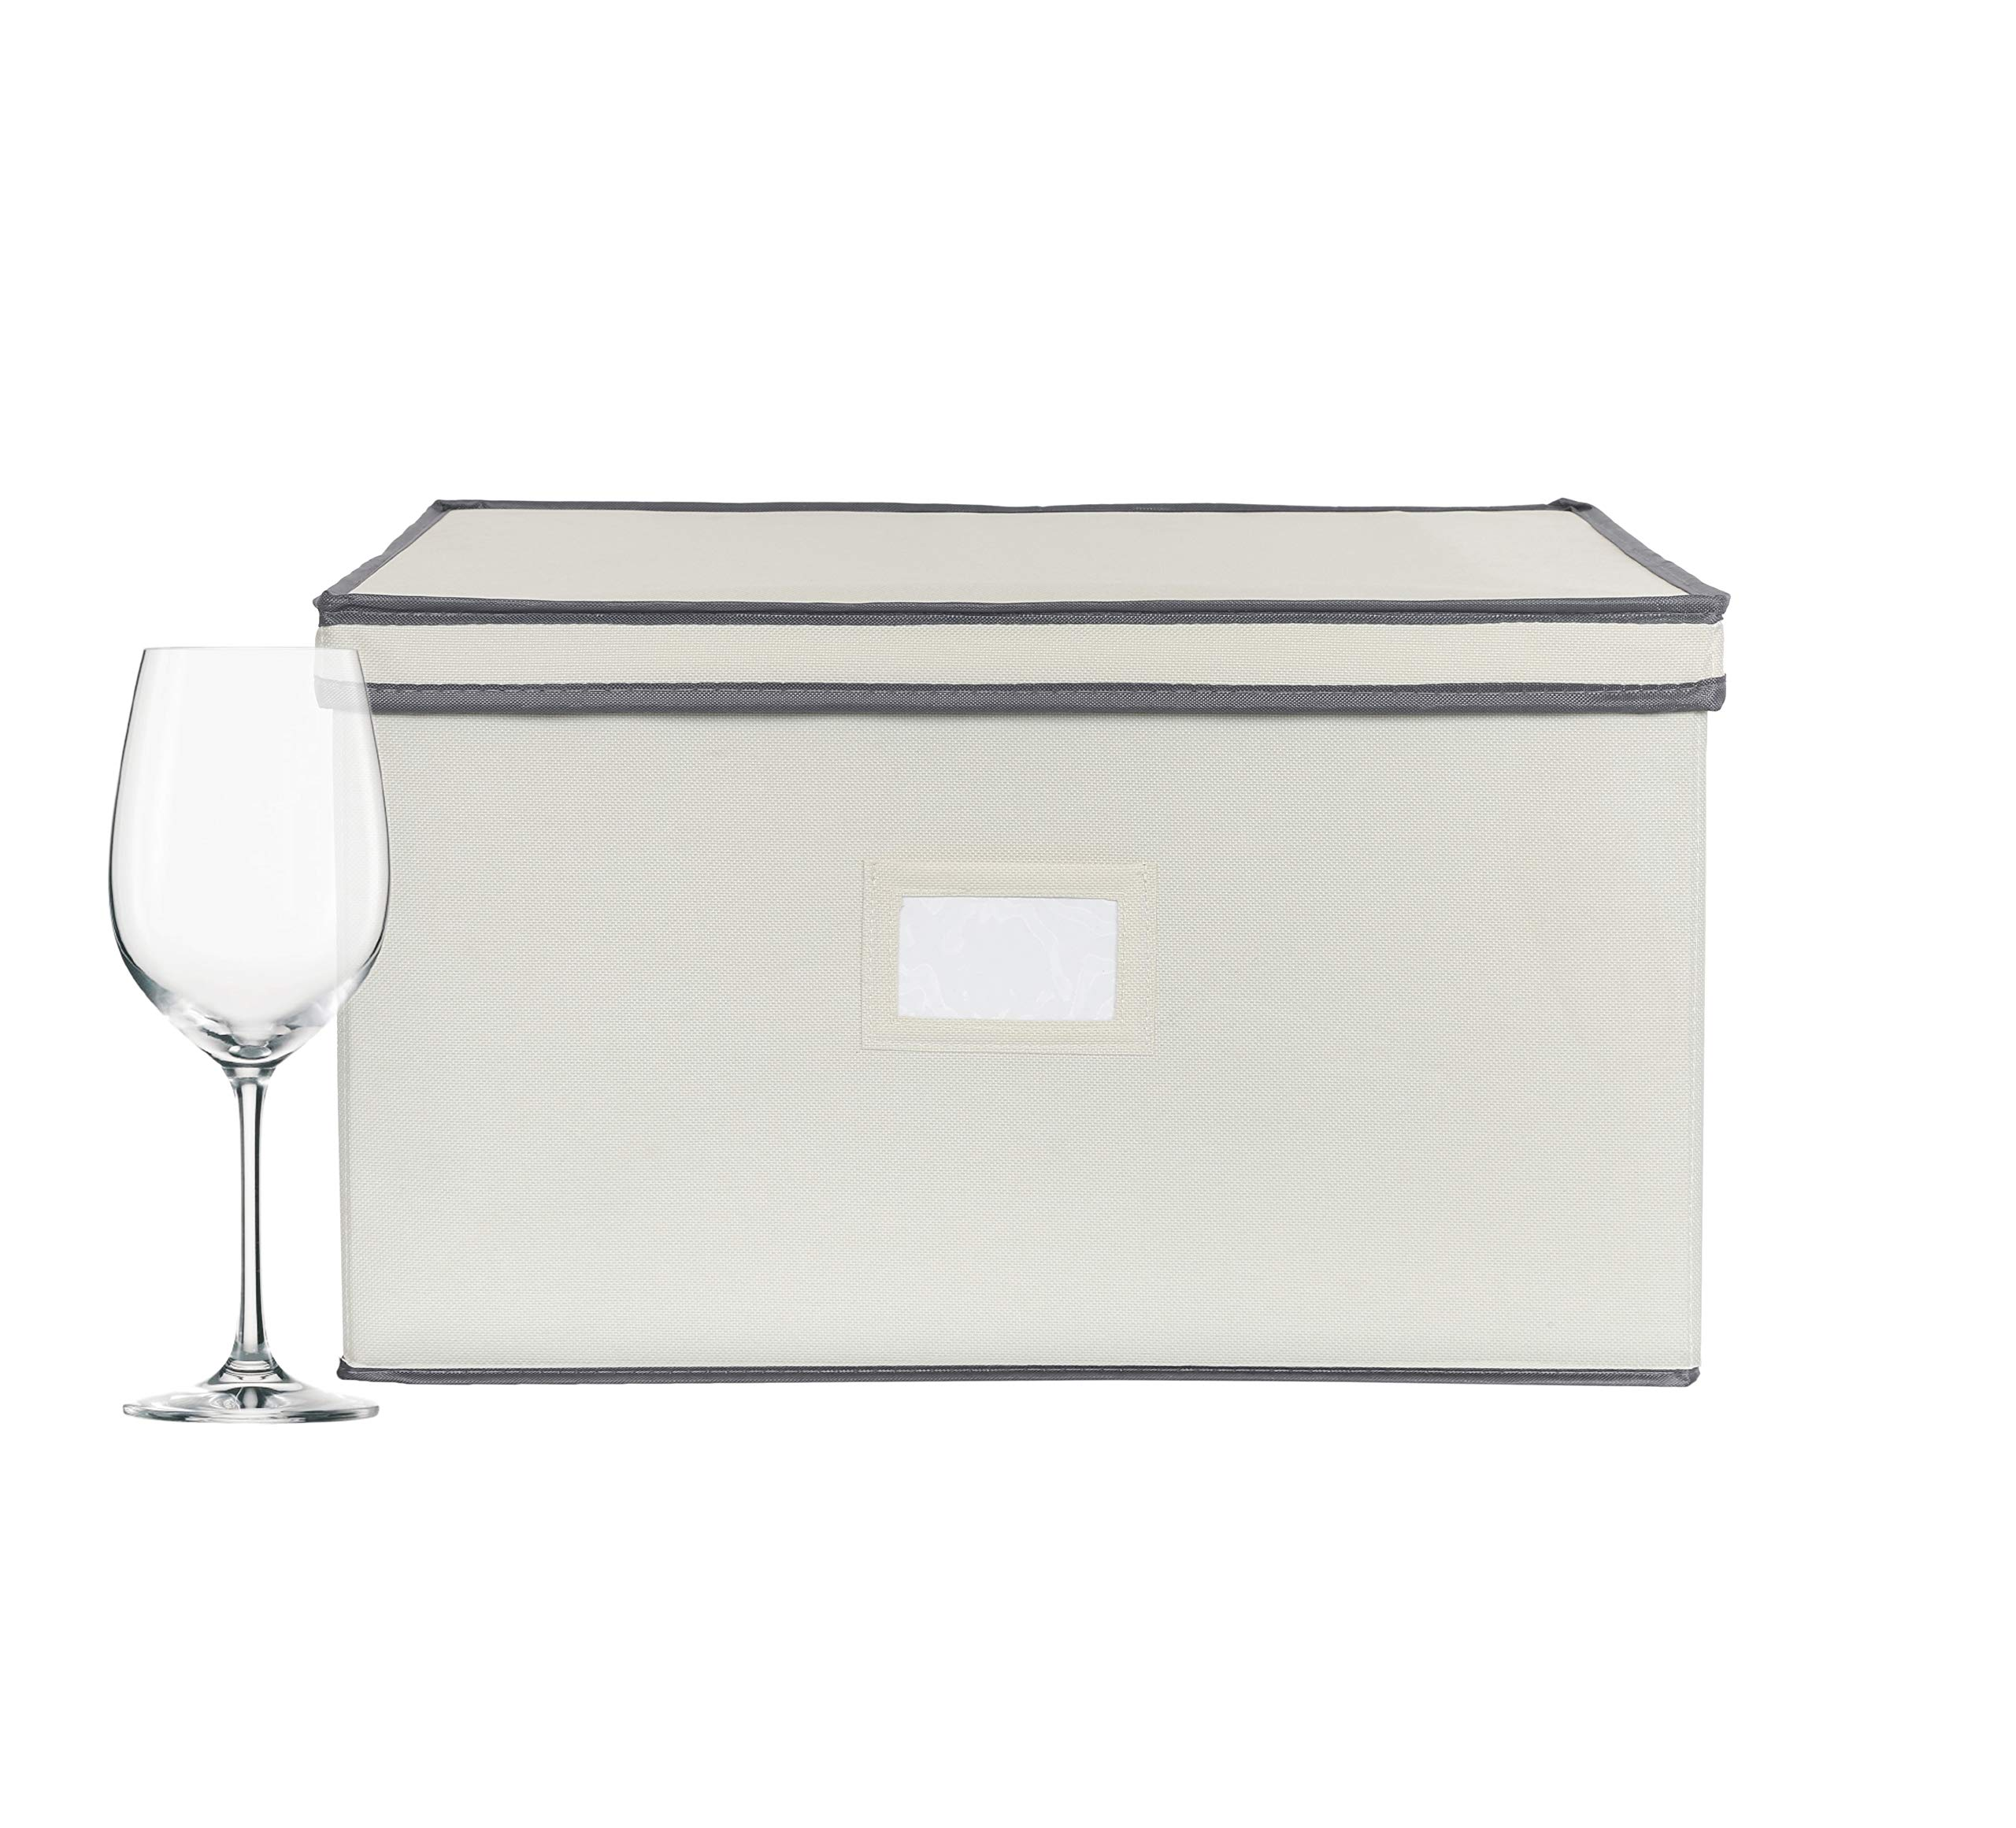 Chapman & Grand Wine Glass Storage Chest, Protective Container Box with Lid for Stemware | (Light Beige/Gray)